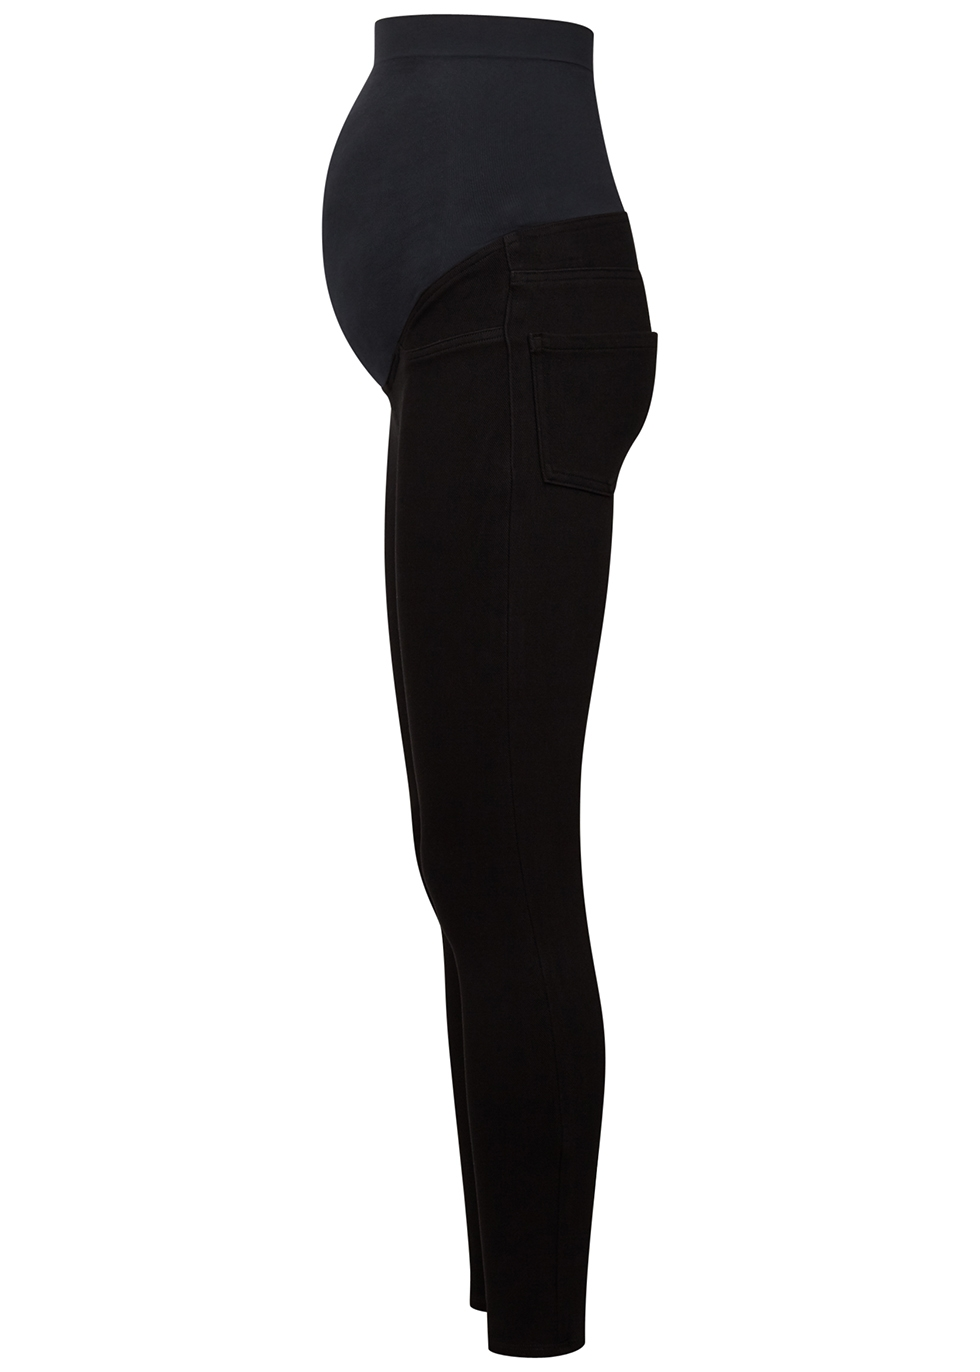 Mama Jean-ish black maternity leggings